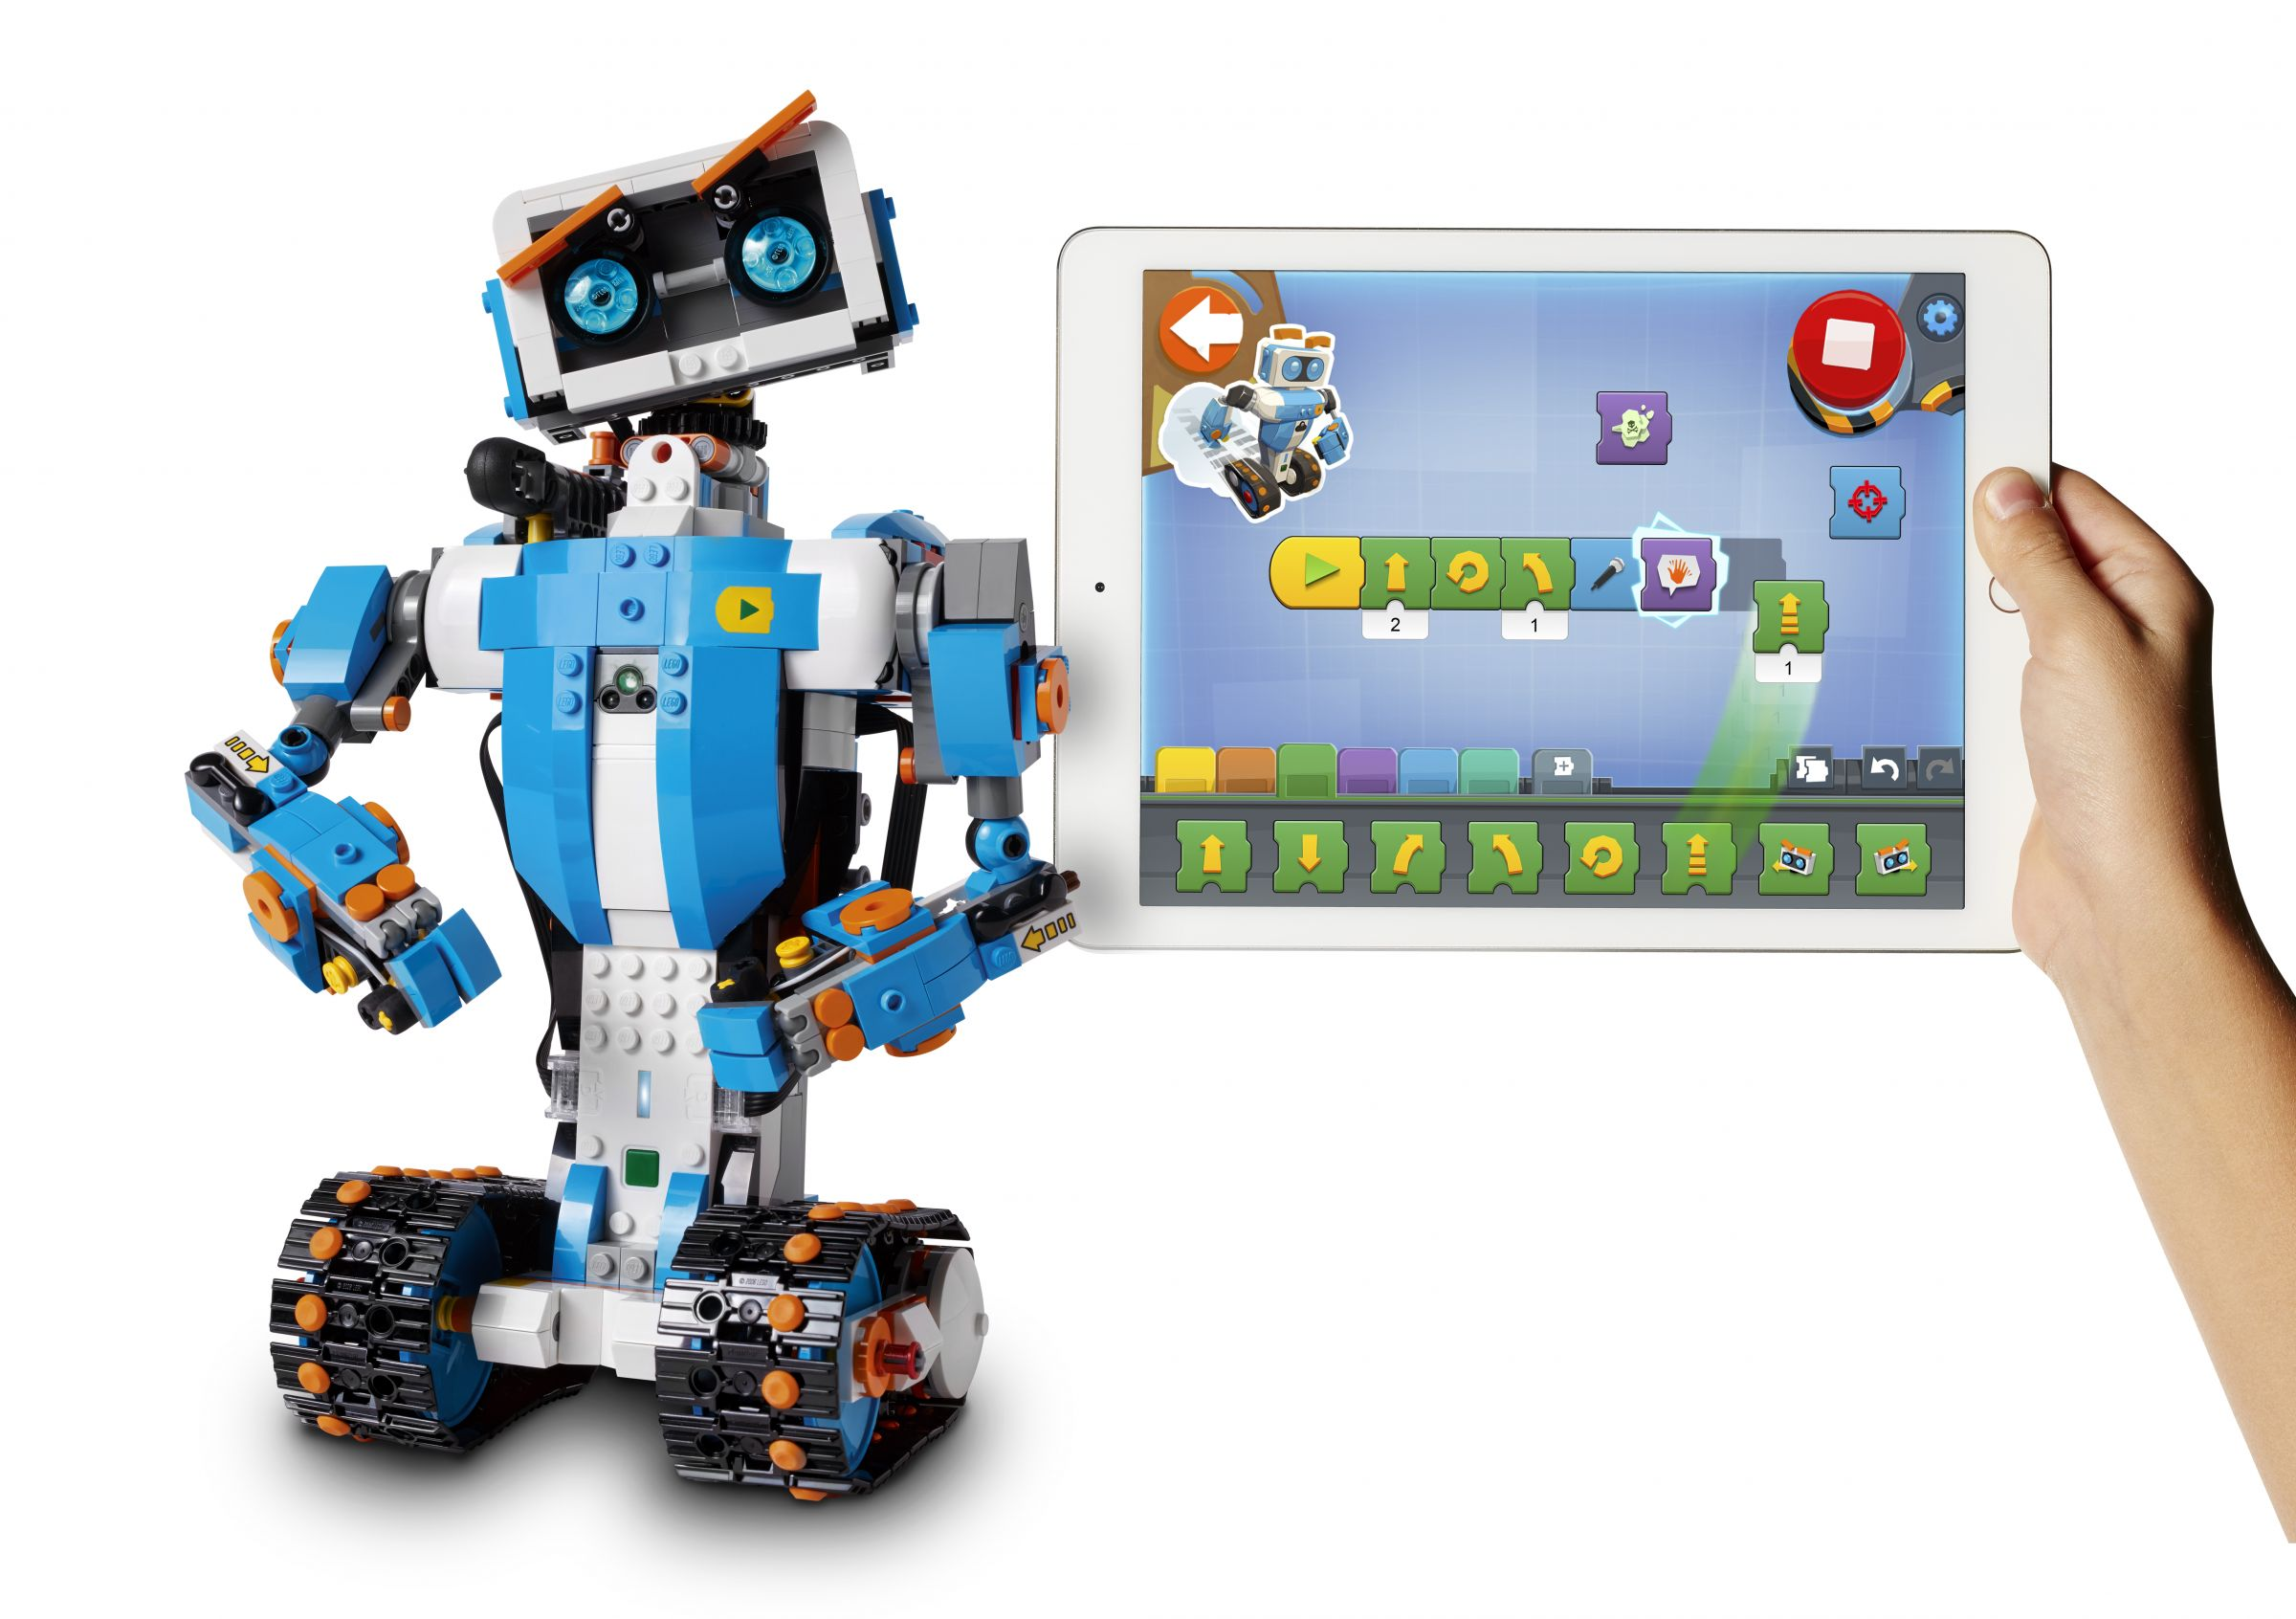 LEGO BOOST 17101 Creative Toolbox LEGO_BOOST_Tablet_Vernie-white-bckgrnd.jpg